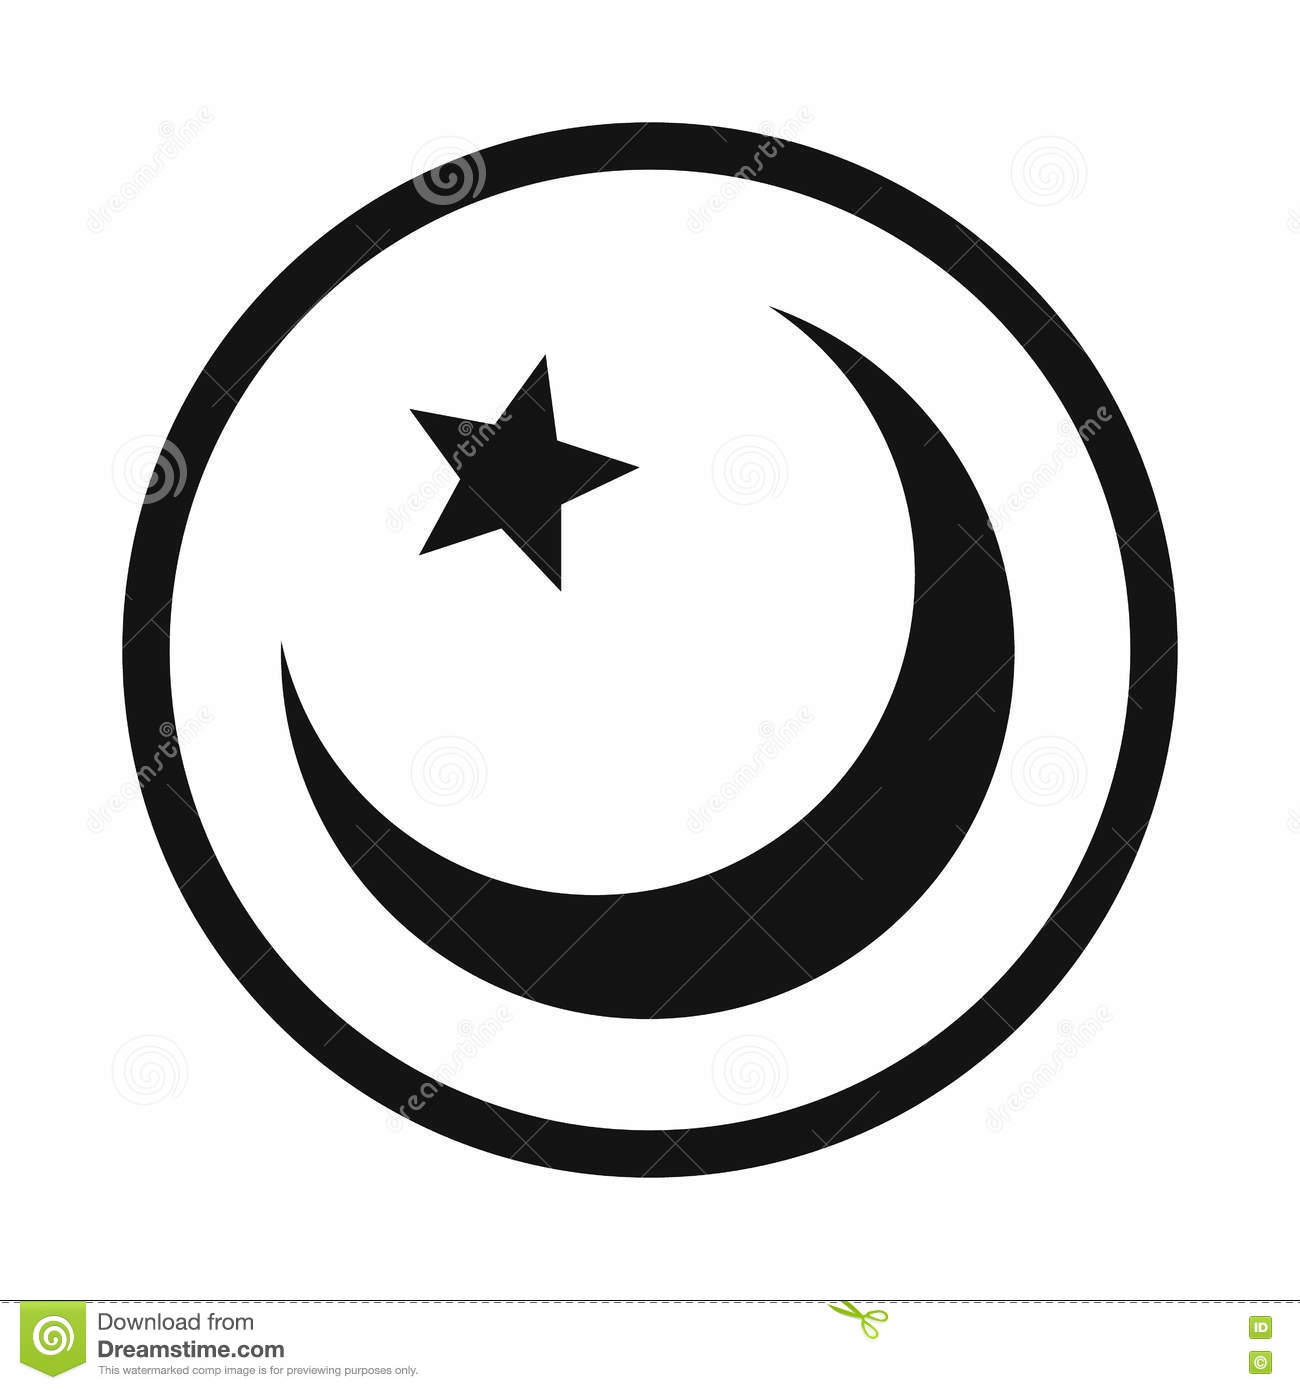 Islam Symbol Simple Icon Stock Vector Illustration Of Round 79850397